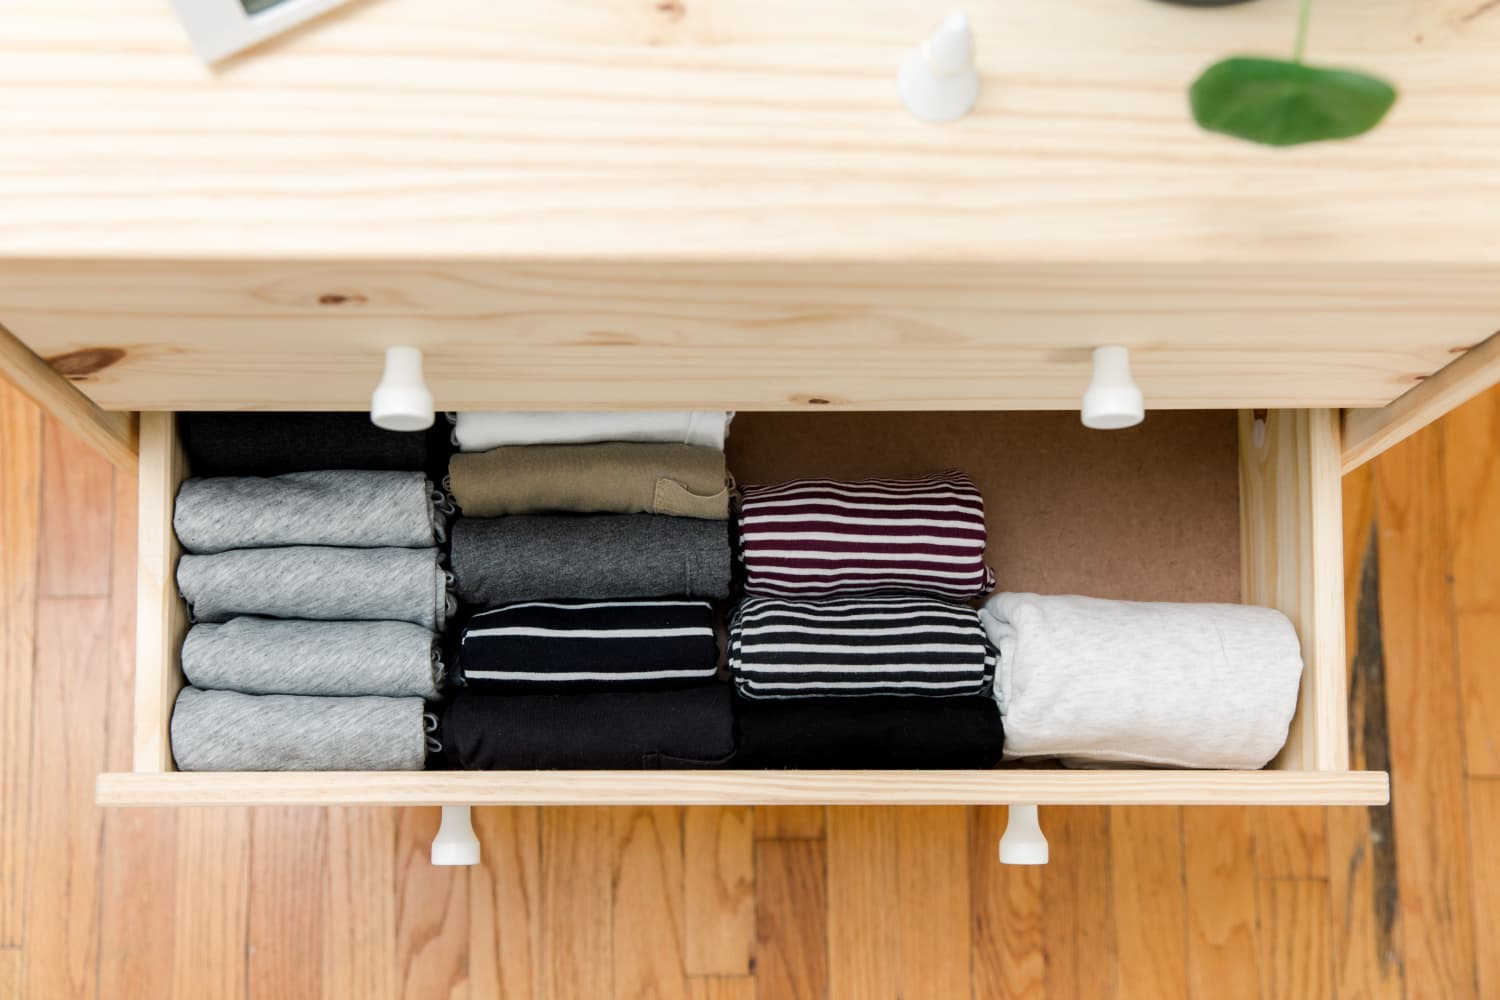 The Easier Way to KonMari When You're Feeling Lazy